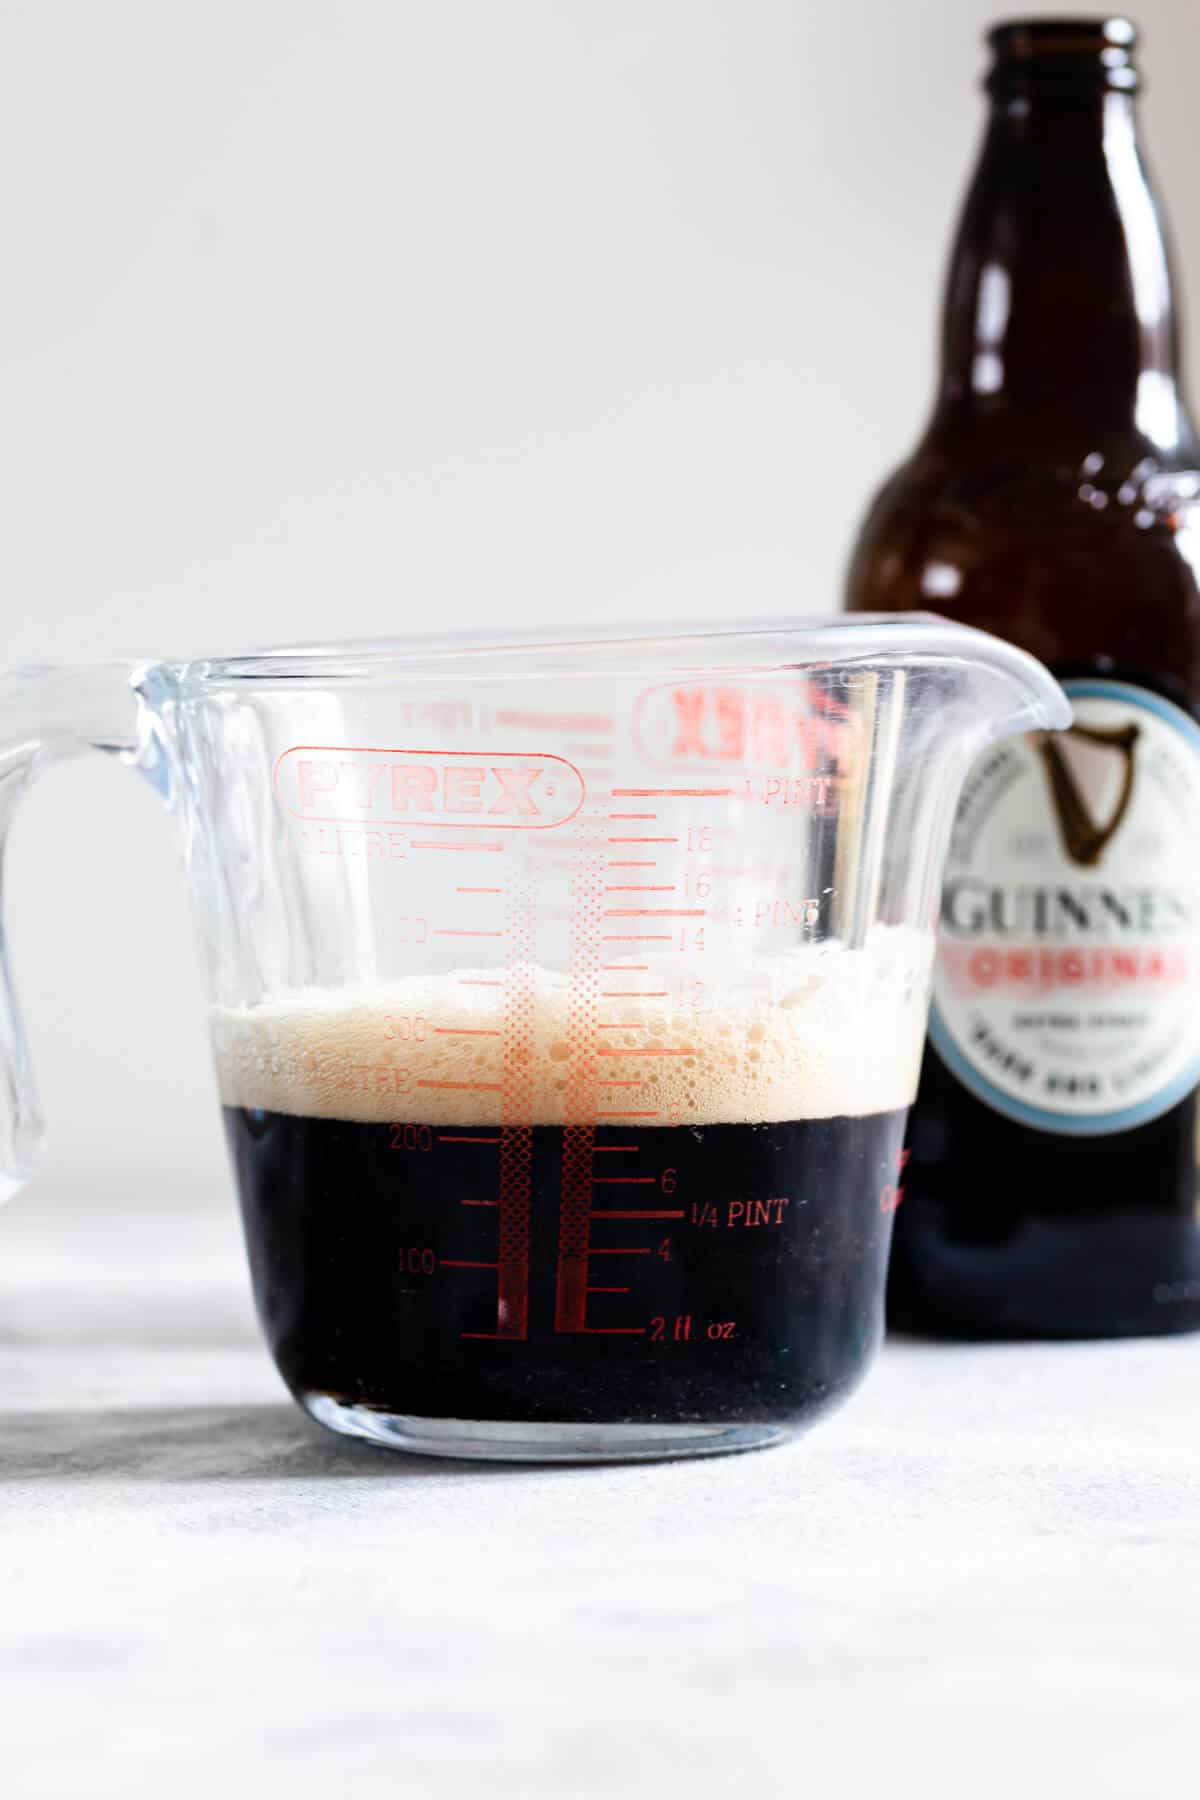 side close up photo of a glass jug with Guinness inside